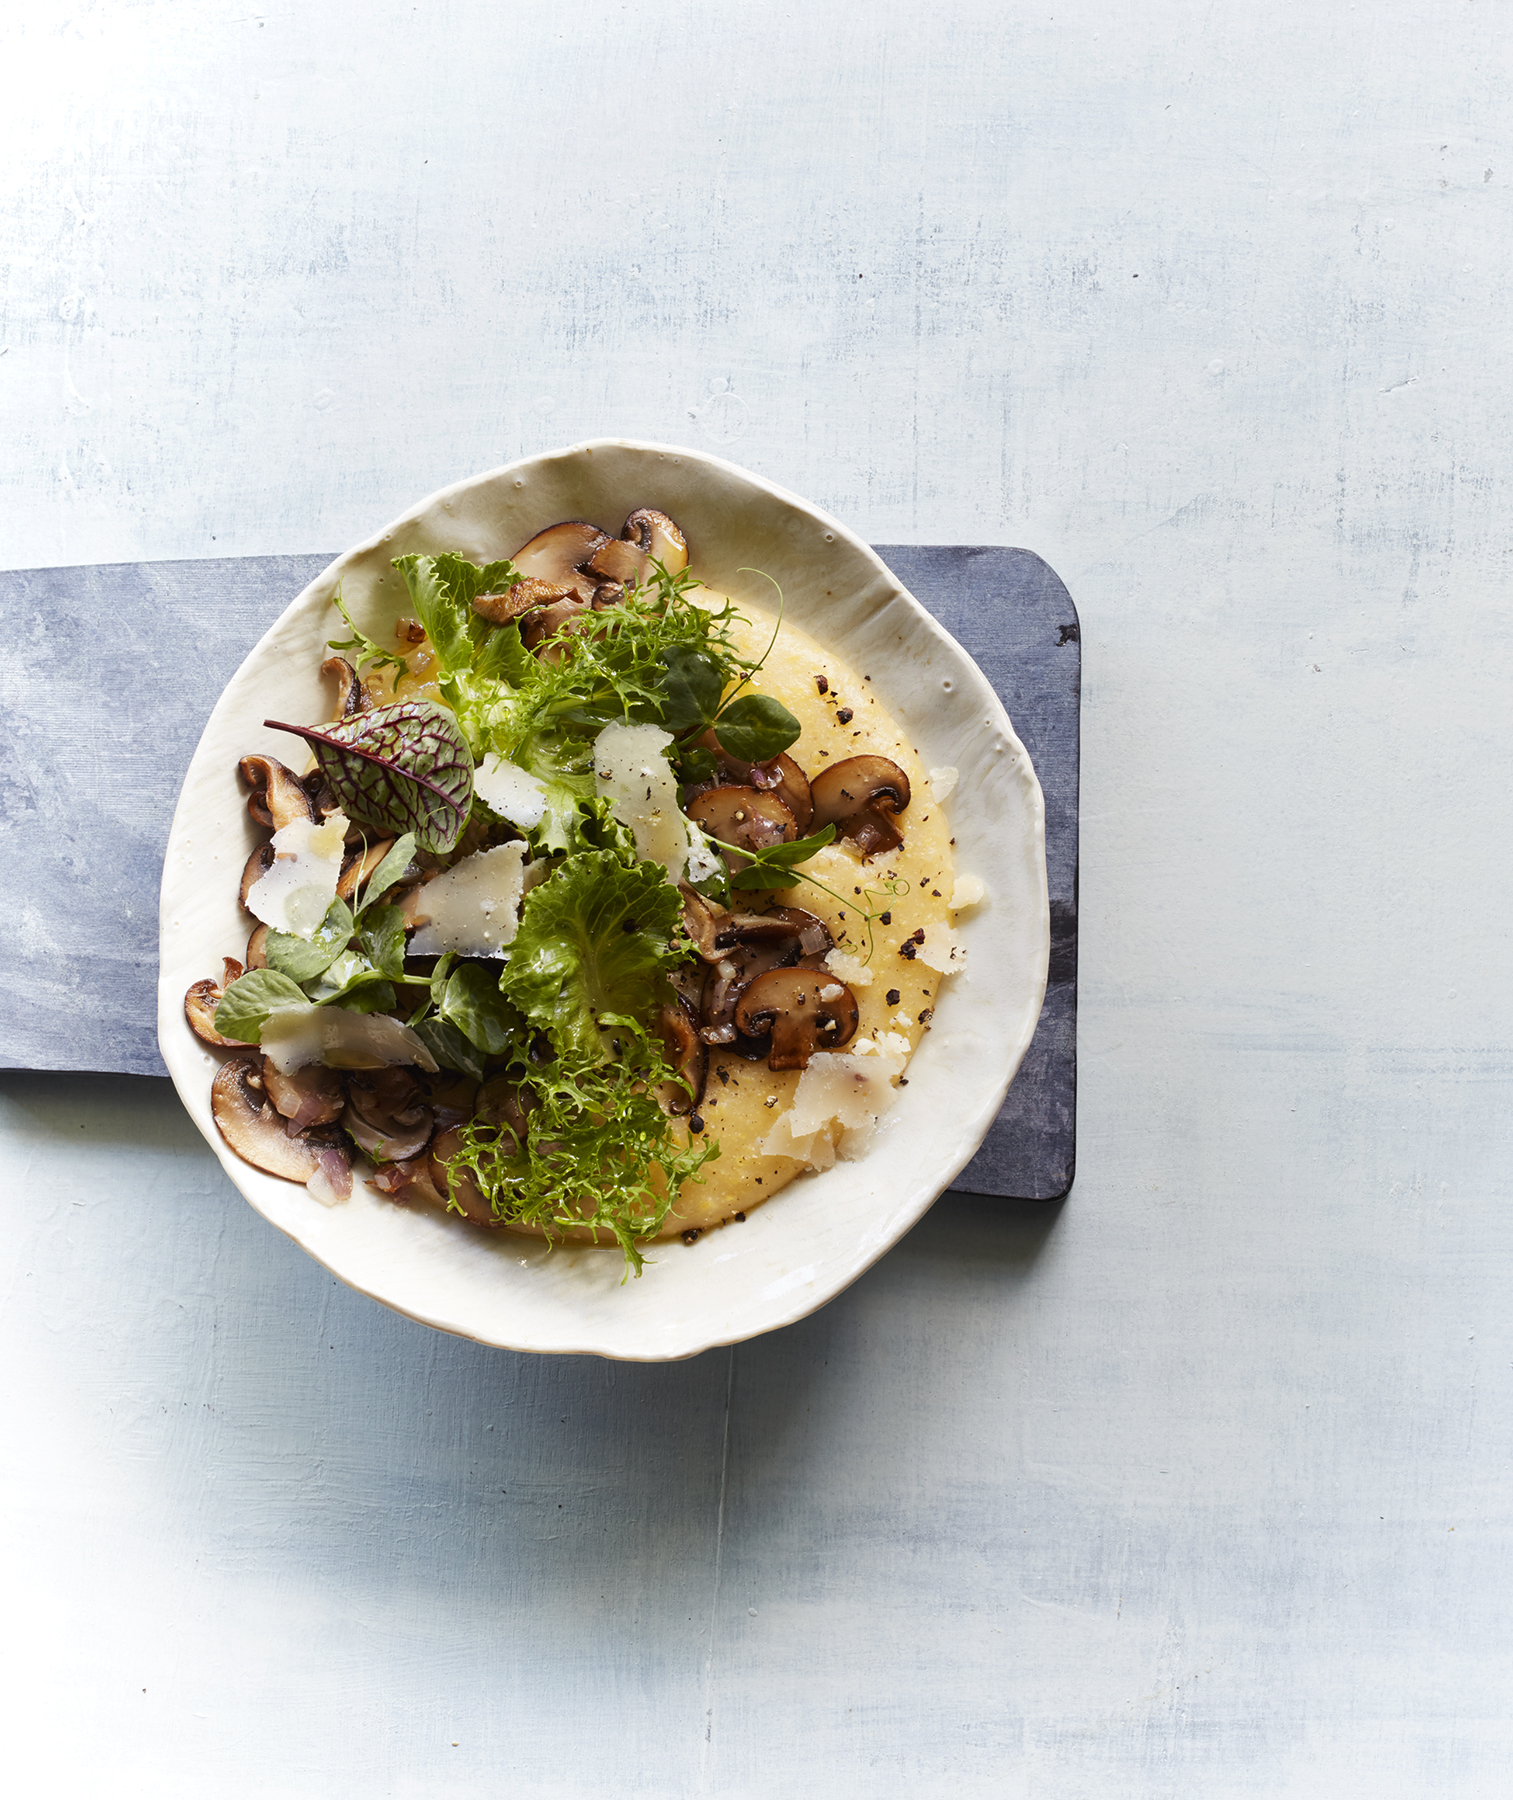 Creamy Polenta With Mushrooms and Baby Greens